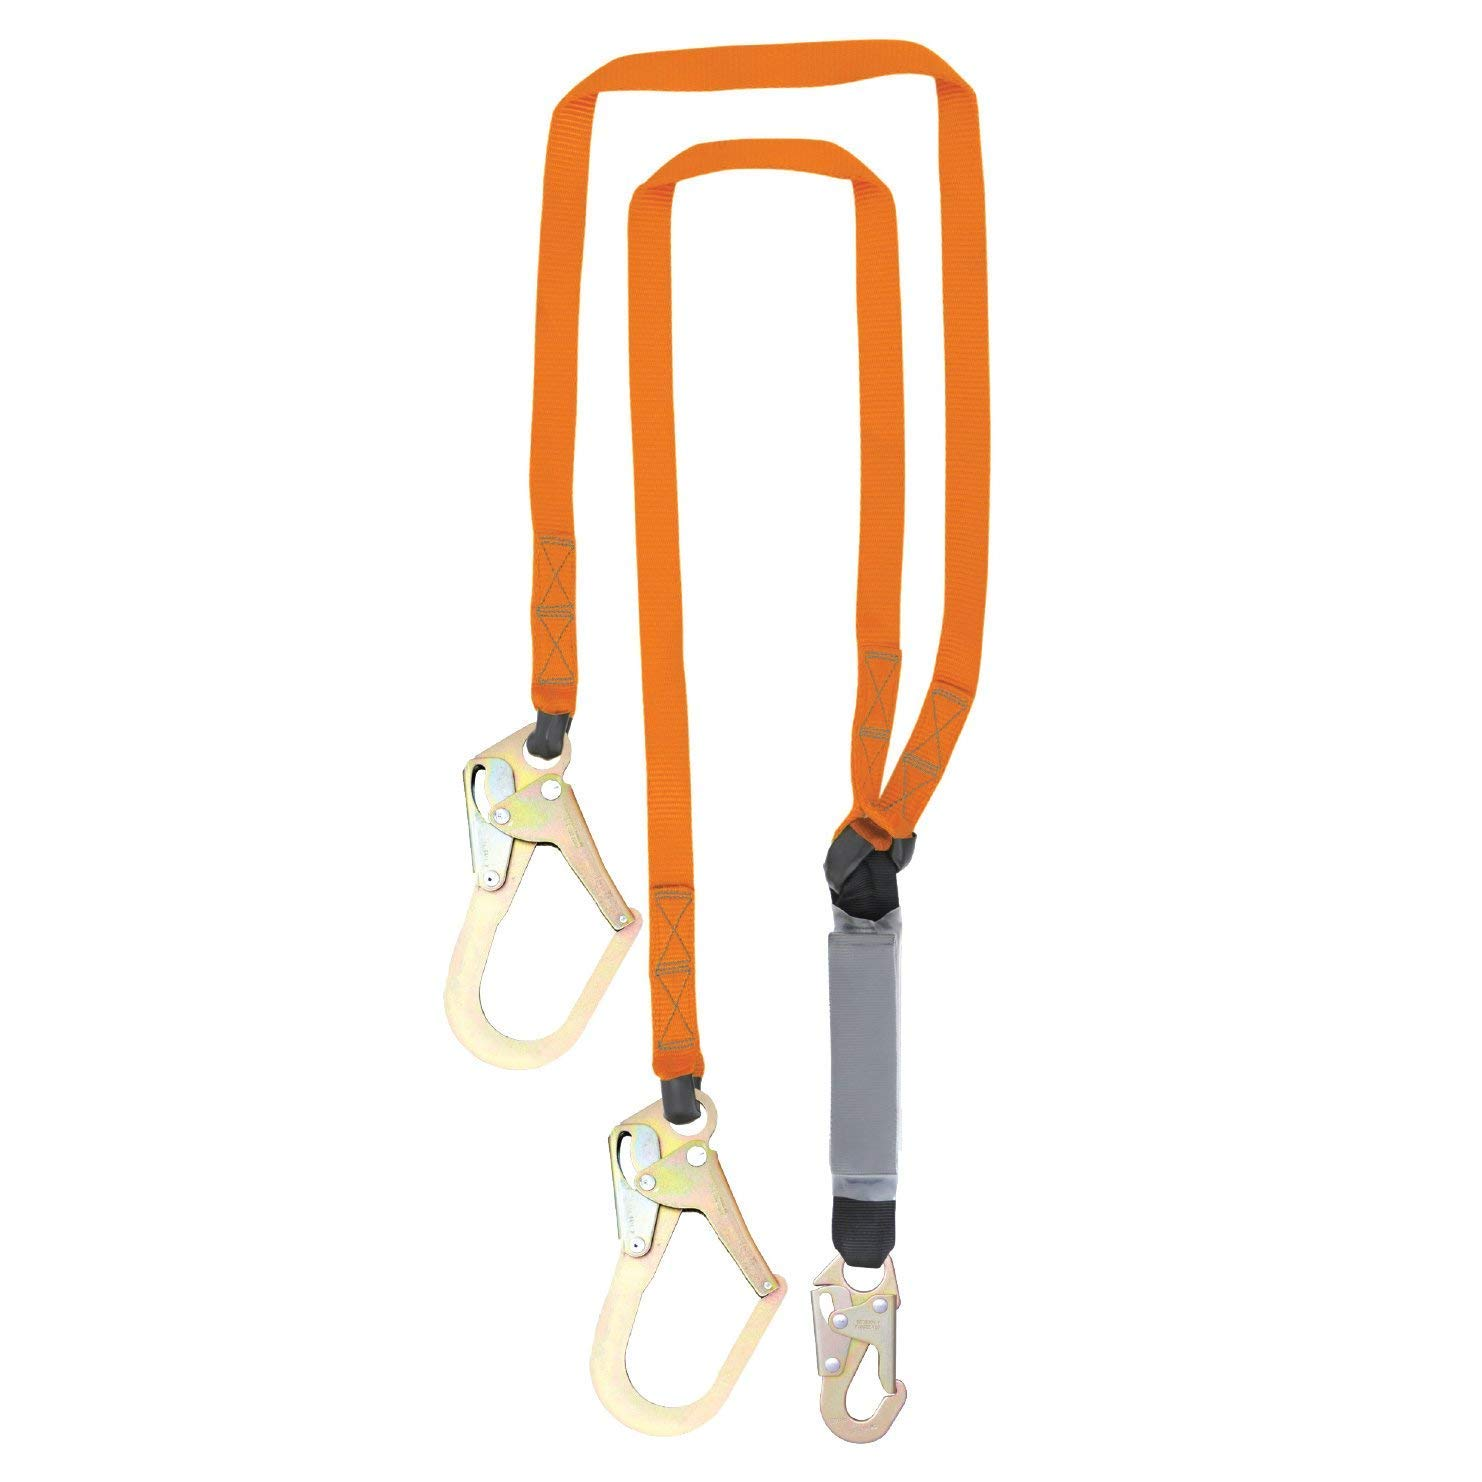 Malta Dynamics Fall Protection Six-foot Double Leg External Shock Absorbing Lanyard with Two Rebar Hooks and One Steel Snap Hook by Malta Dynamics (Image #1)